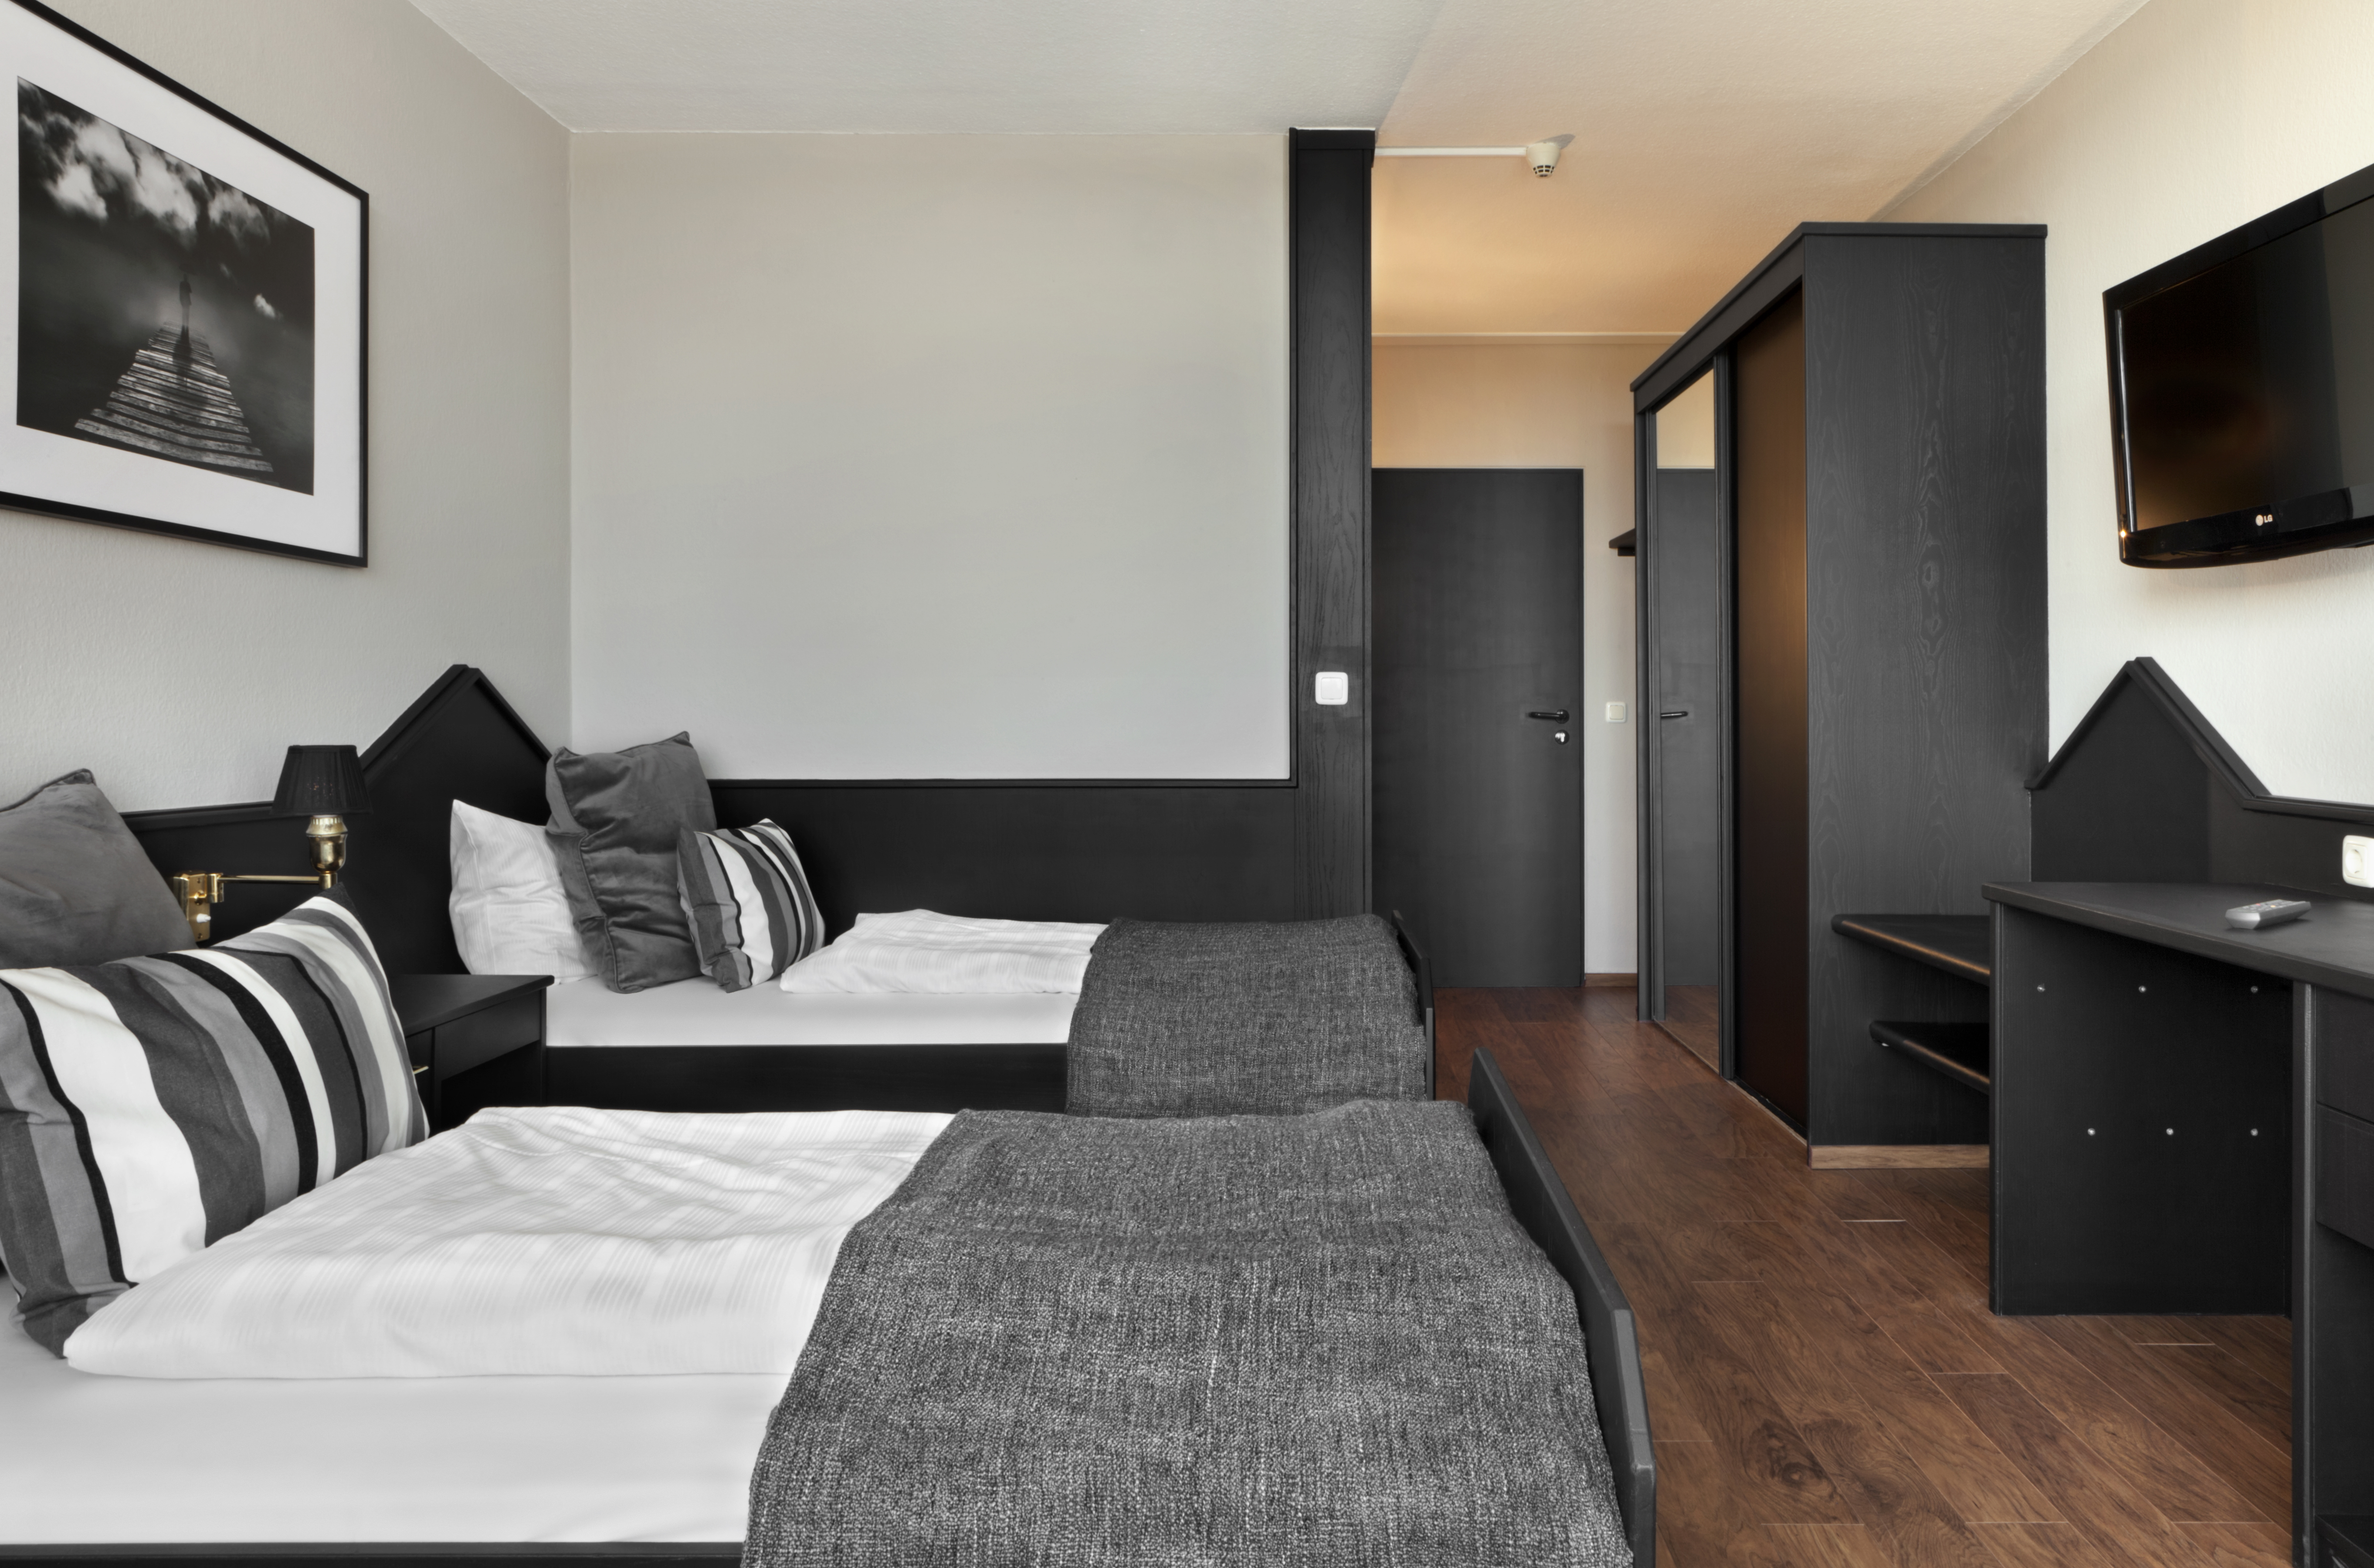 TRYP by Wyndham Bad Bramstedt in Bad Bramstedt - Book on